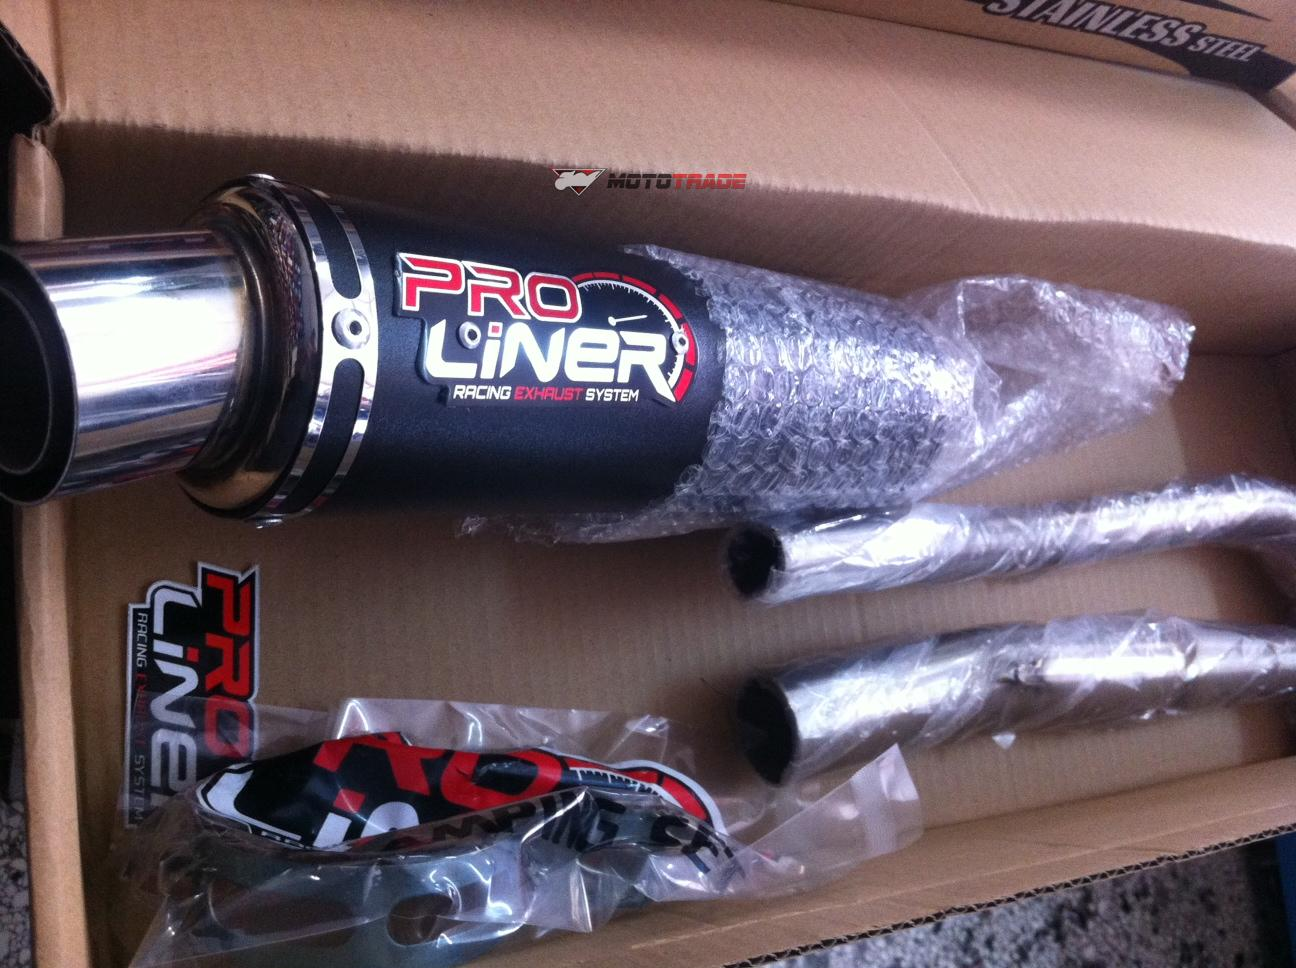 accesories : exhaust honda innova proliner sr(n) black